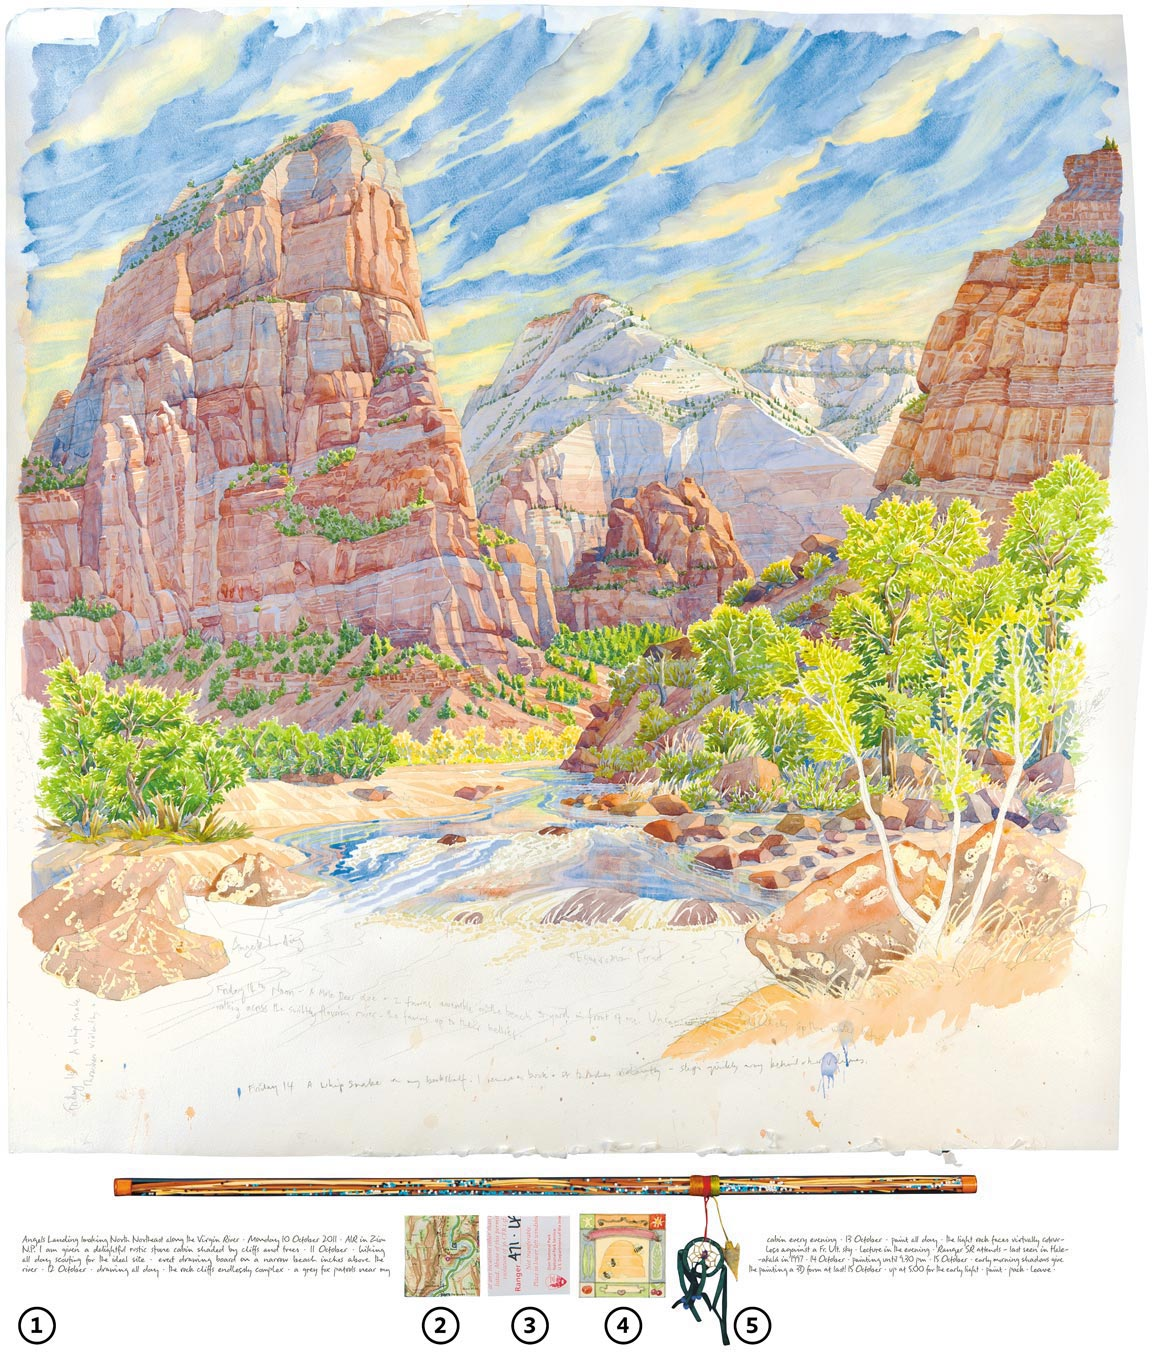 (1) Inscriptions — (2) Maps — (3) Artifacts — (4) Studies — (5) Talismans  Tony Foster,  Angels Landing Looking North Northeast along the Virgin River , 2011. From the journey  Sacred Places .